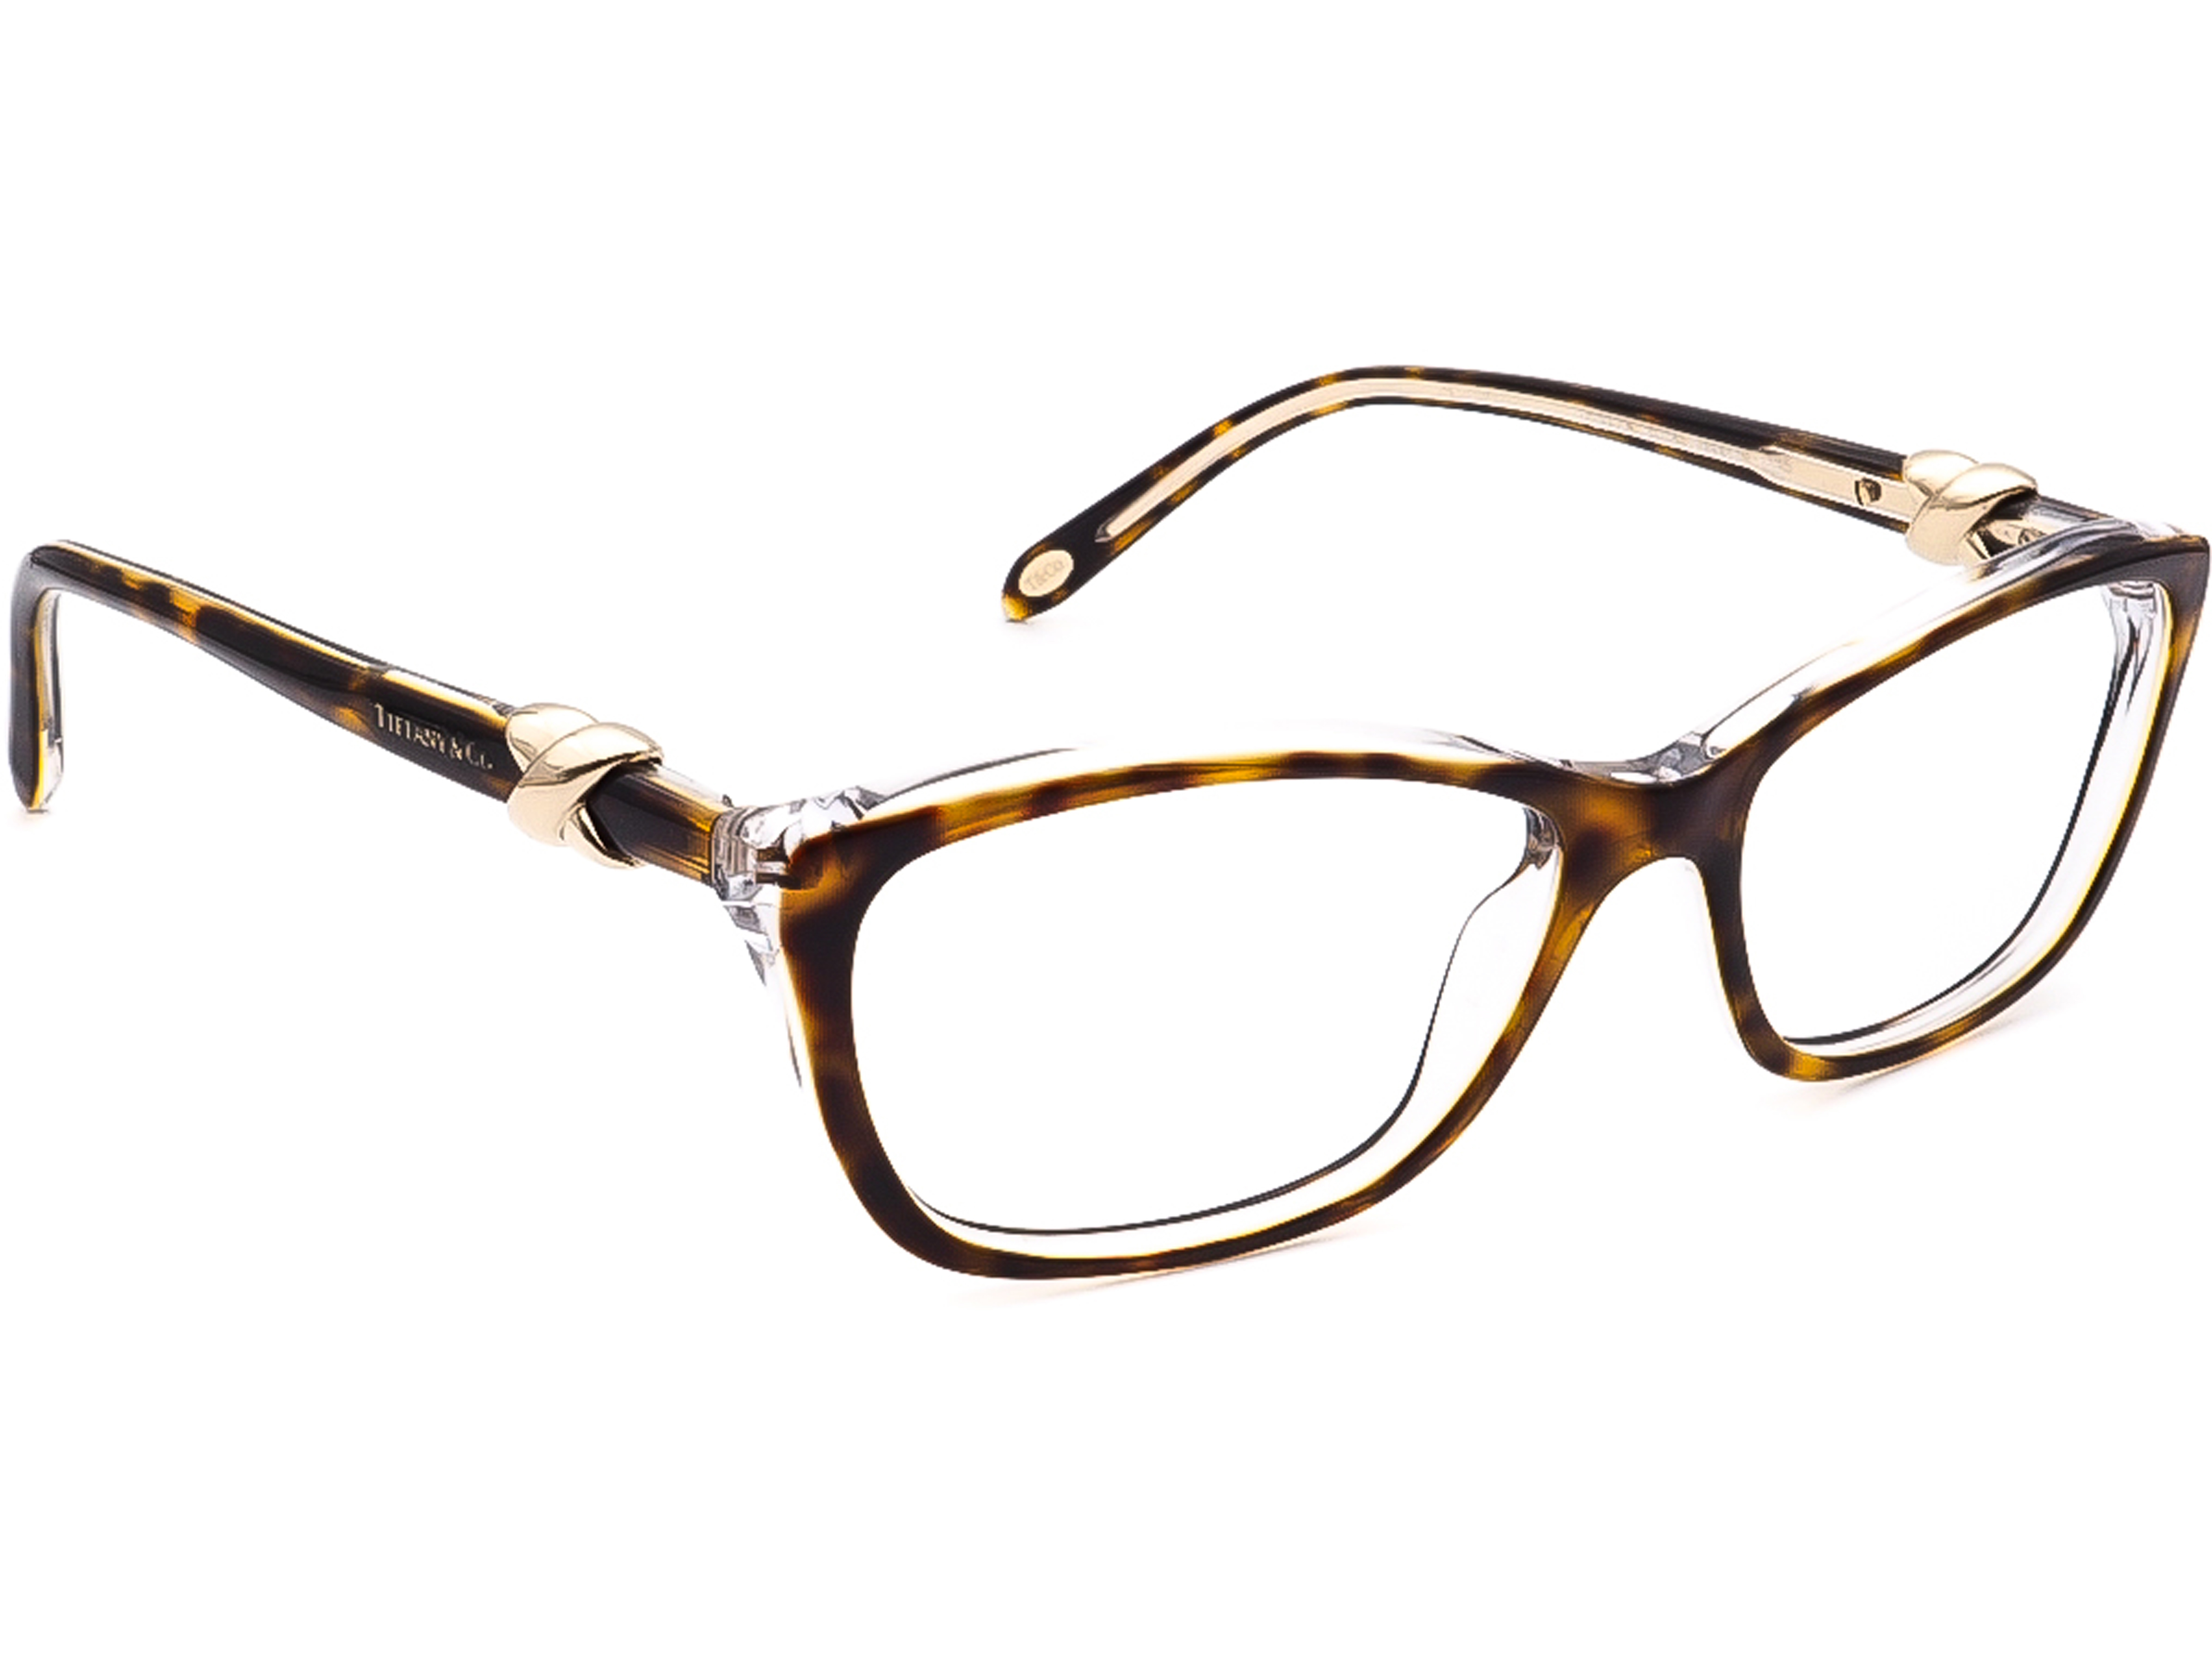 Tiffany & Co. TF 2074 8155 Eyeglasses